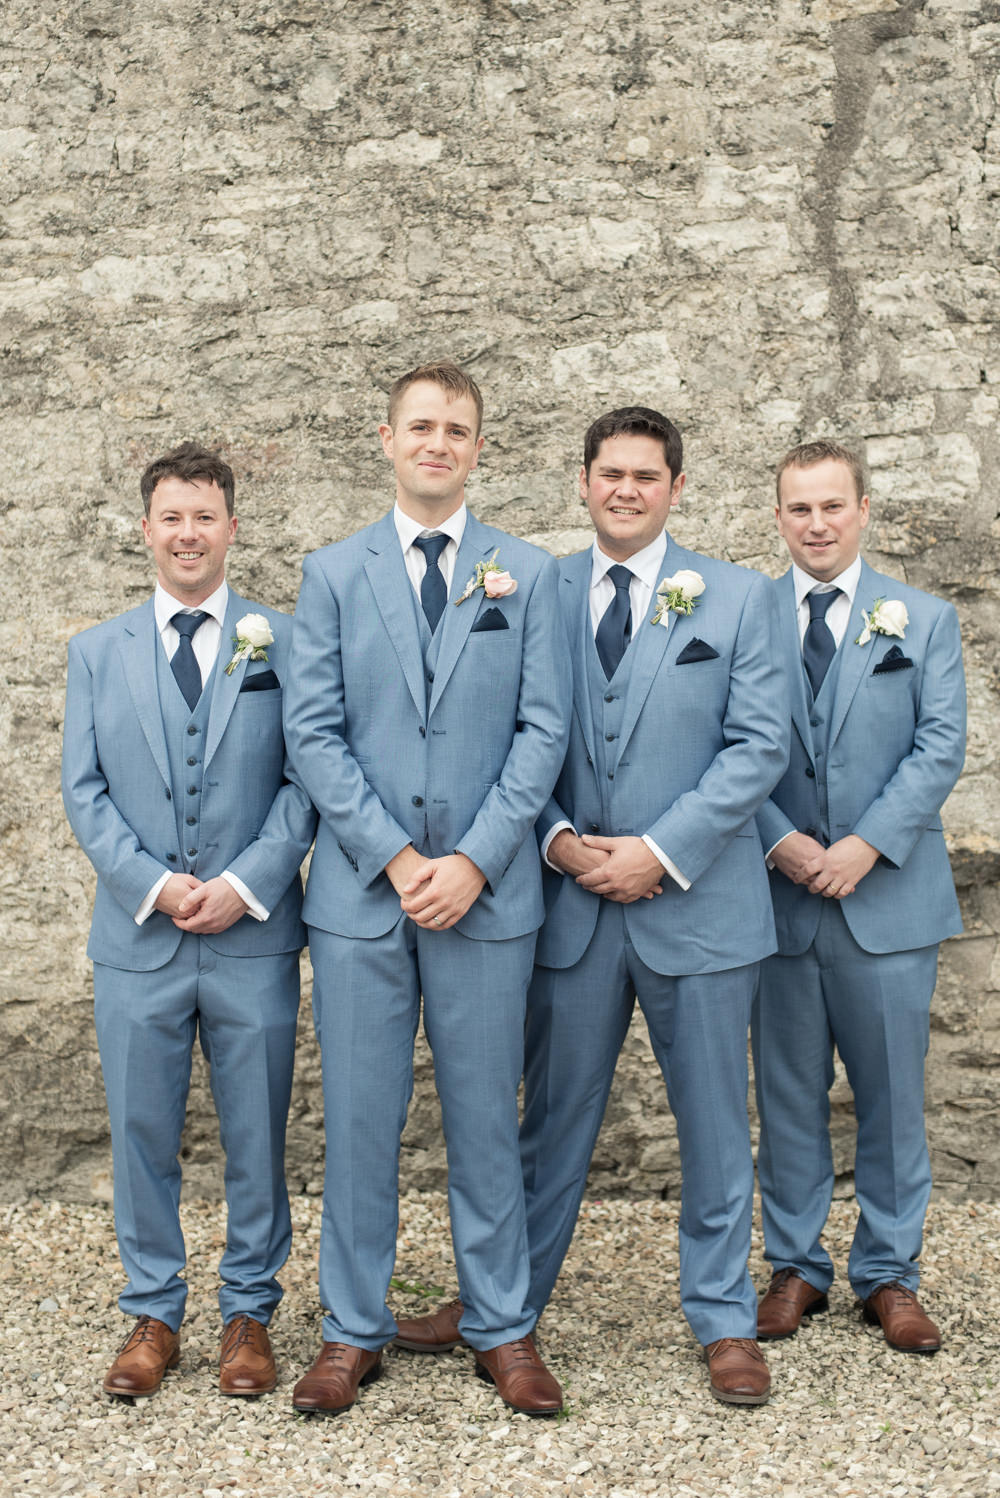 Groom Groomsmen Pale Blue Suits Ties Tan Shoes Tythe Barn Priston Mill Wedding Eleanor Jane Photography